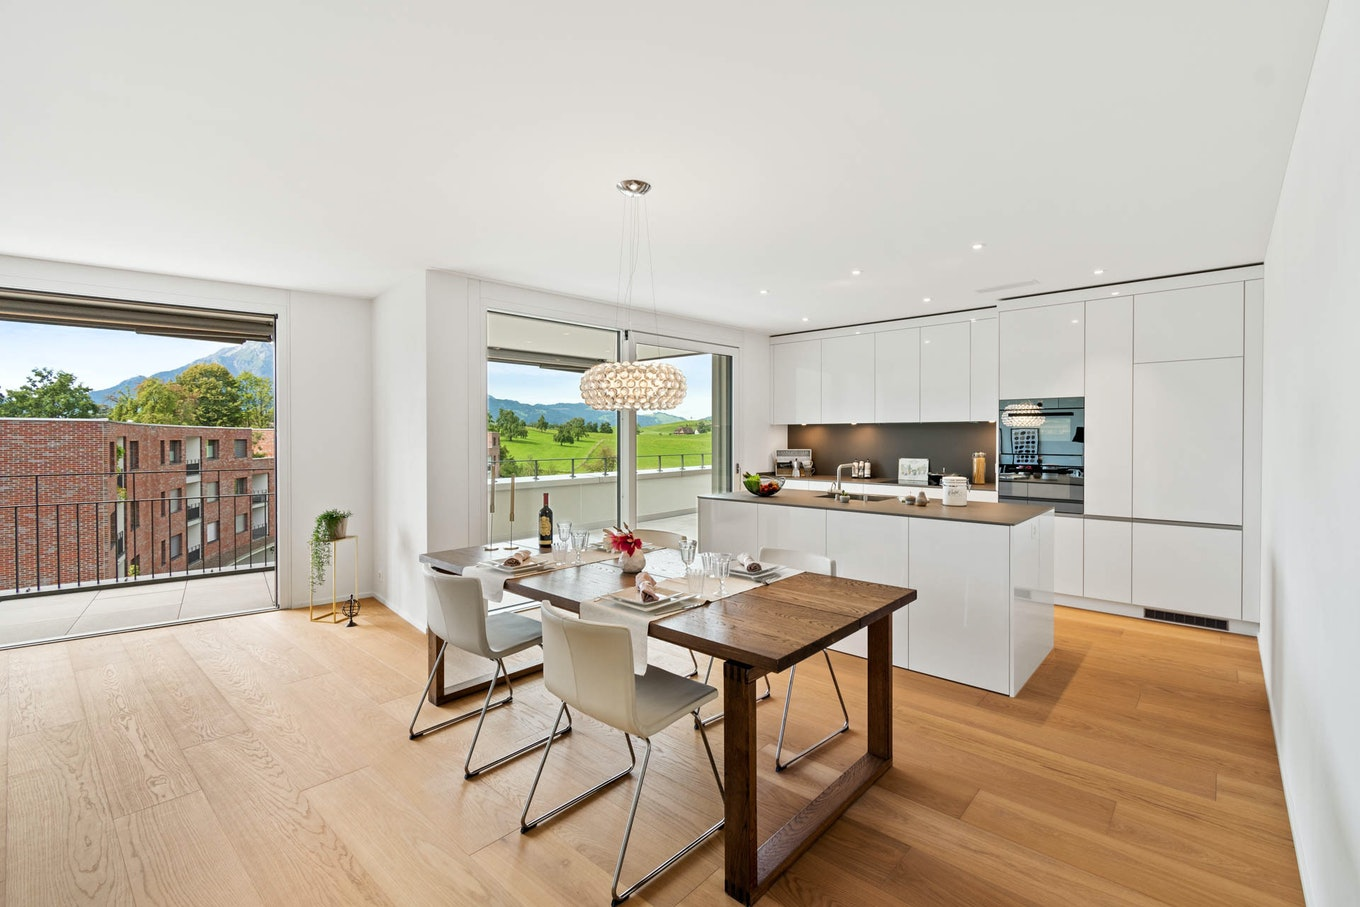 Real Estate Kitchen with Table